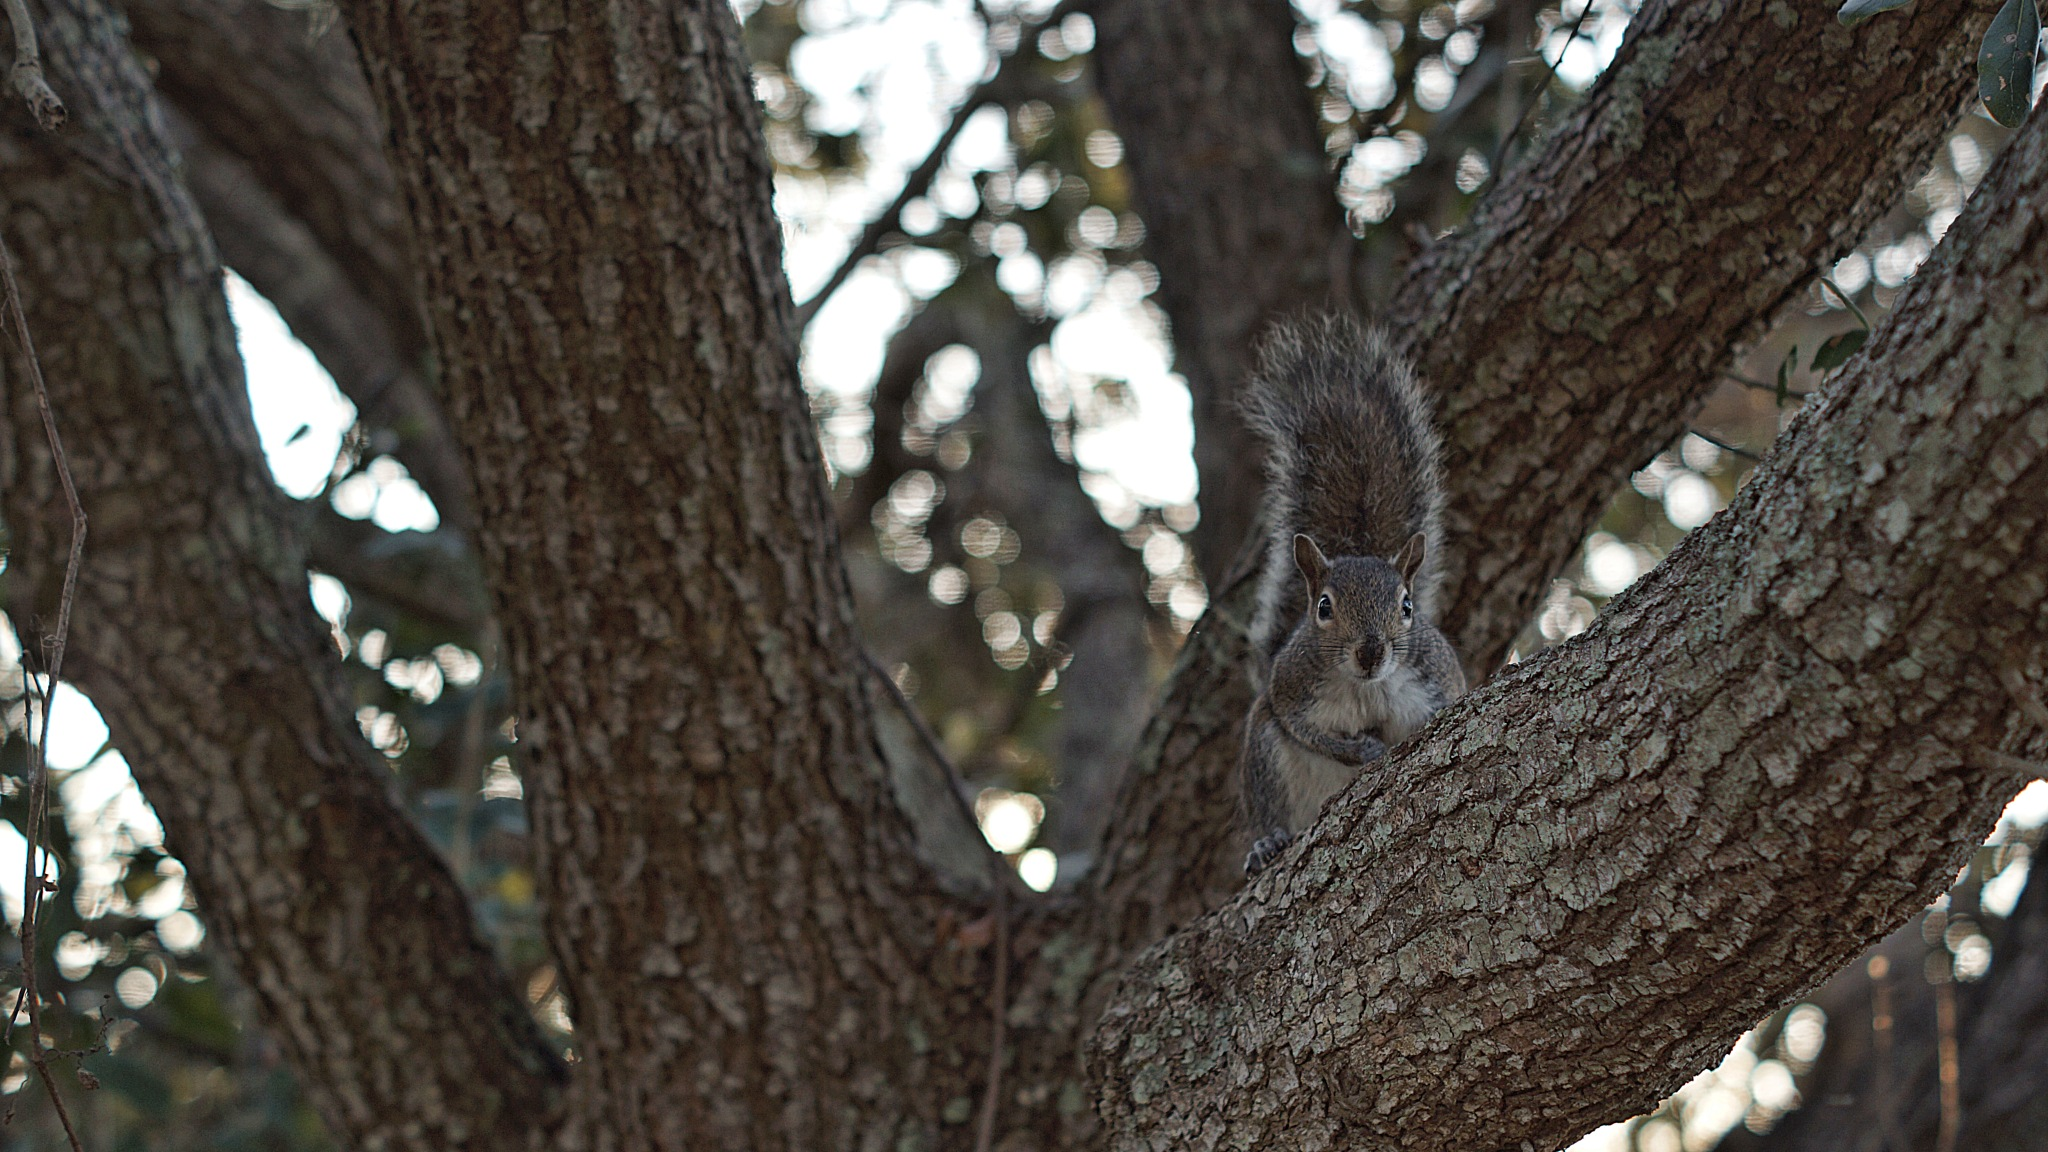 Squirrel hanging out in the tree by smartin3380